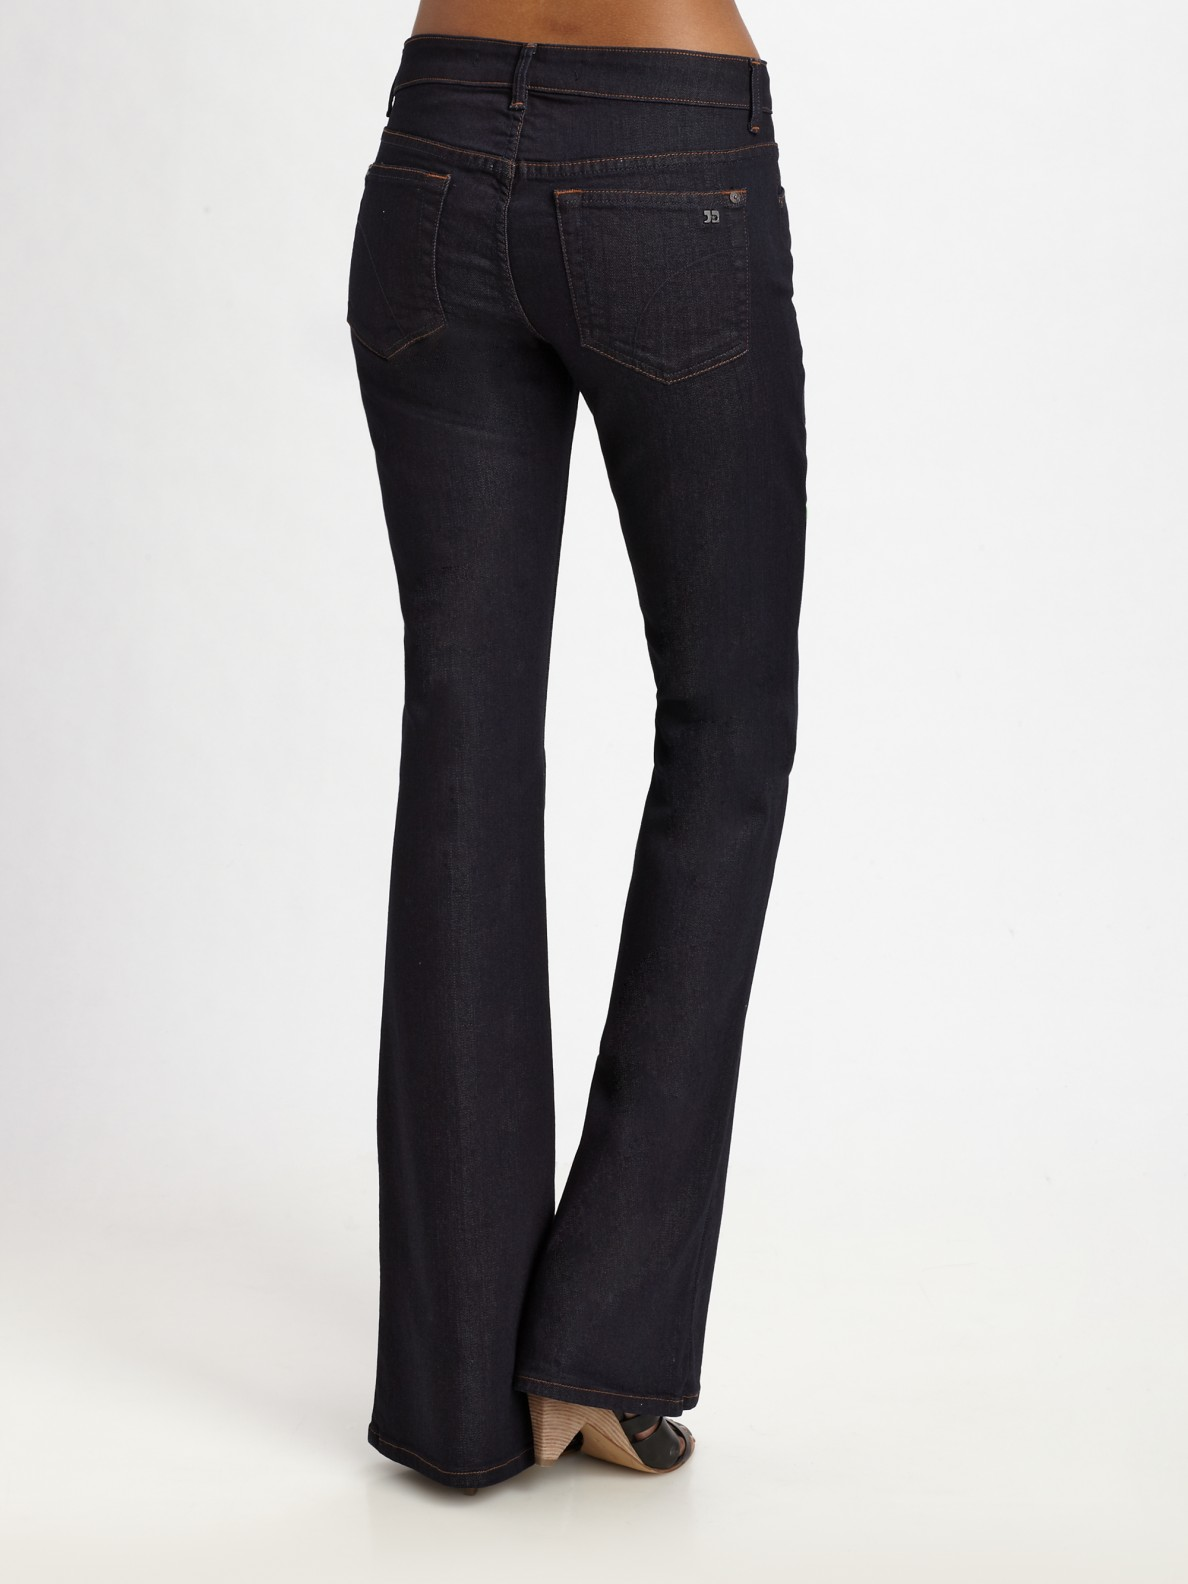 Lyst - Joes Jeans Honey Booty Fit Jeans In Black-4323